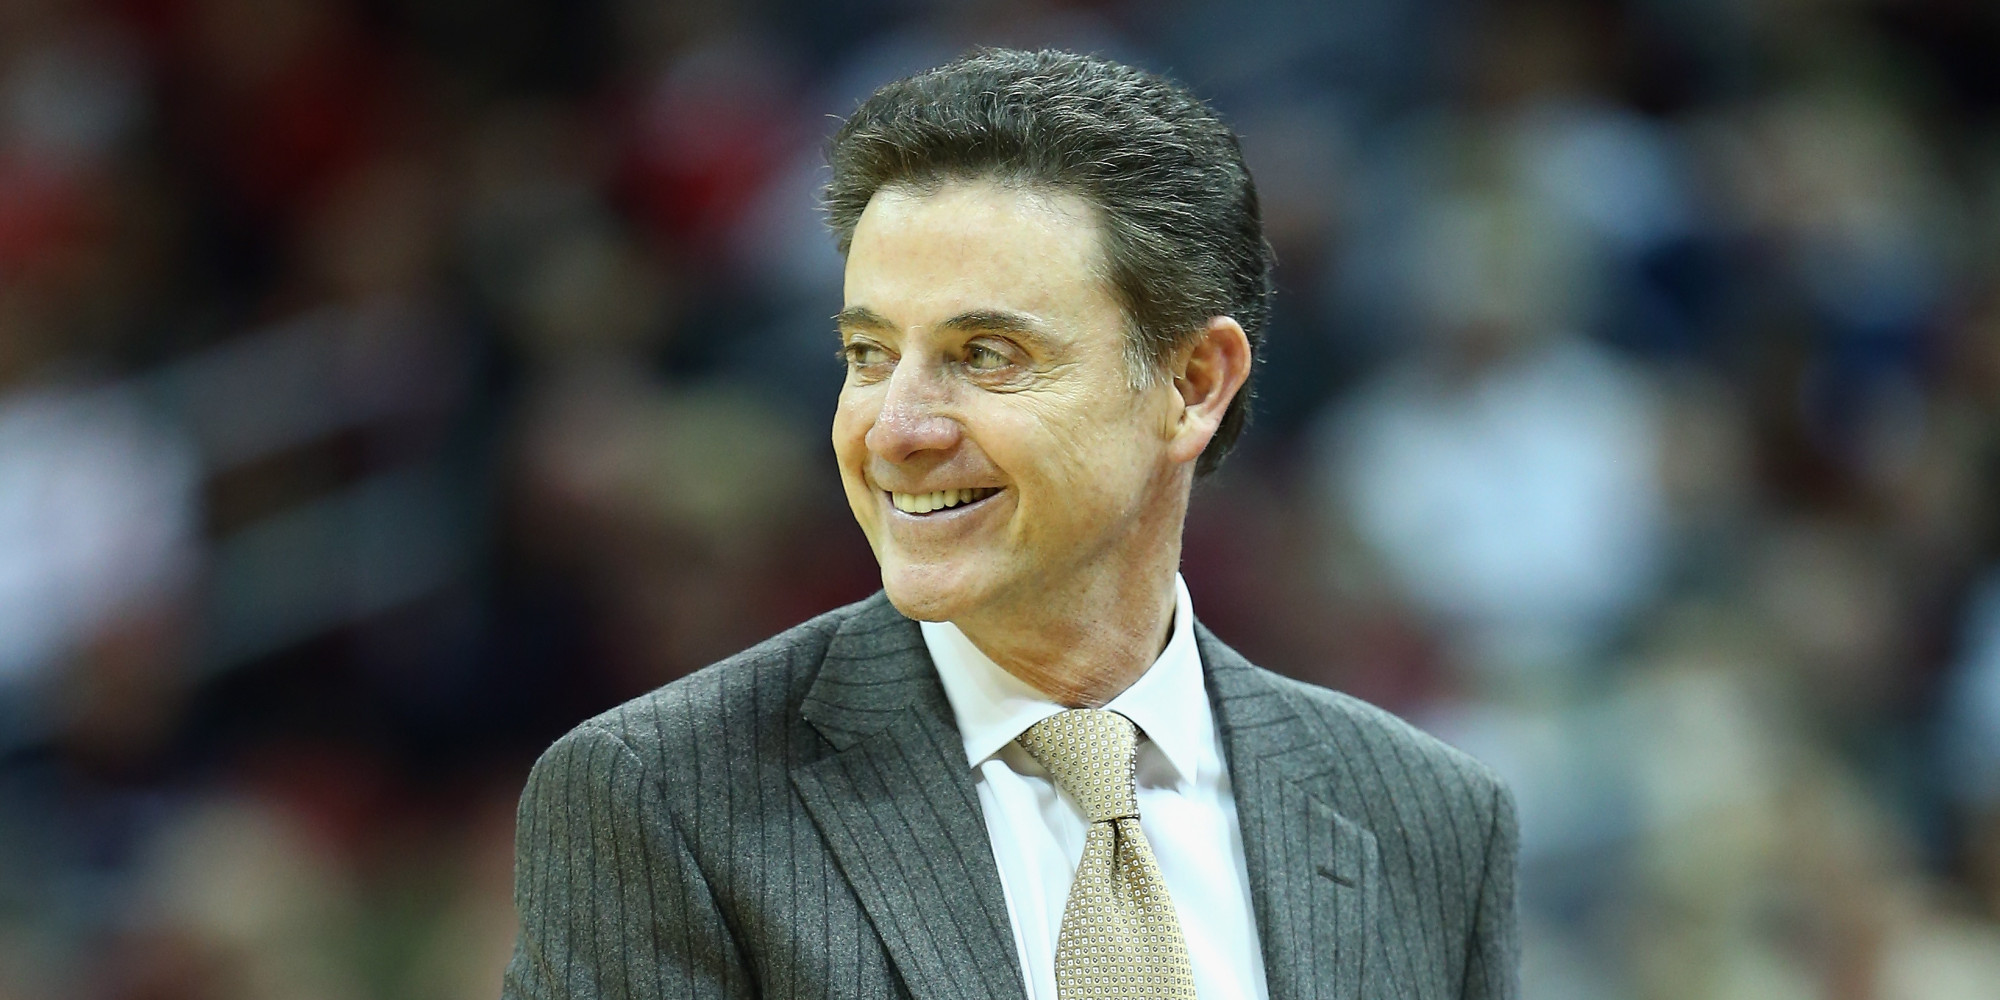 LOUISVILLE, KY - NOVEMBER 29: Rick Pitino the head coach of the Louisville Cardinals givees instructions to his team during the game against the Southern Mississippi Golden Eagles at KFC YUM! Center on November 29, 2013 in Louisville, Kentucky. (Photo by Andy Lyons/Getty Images)